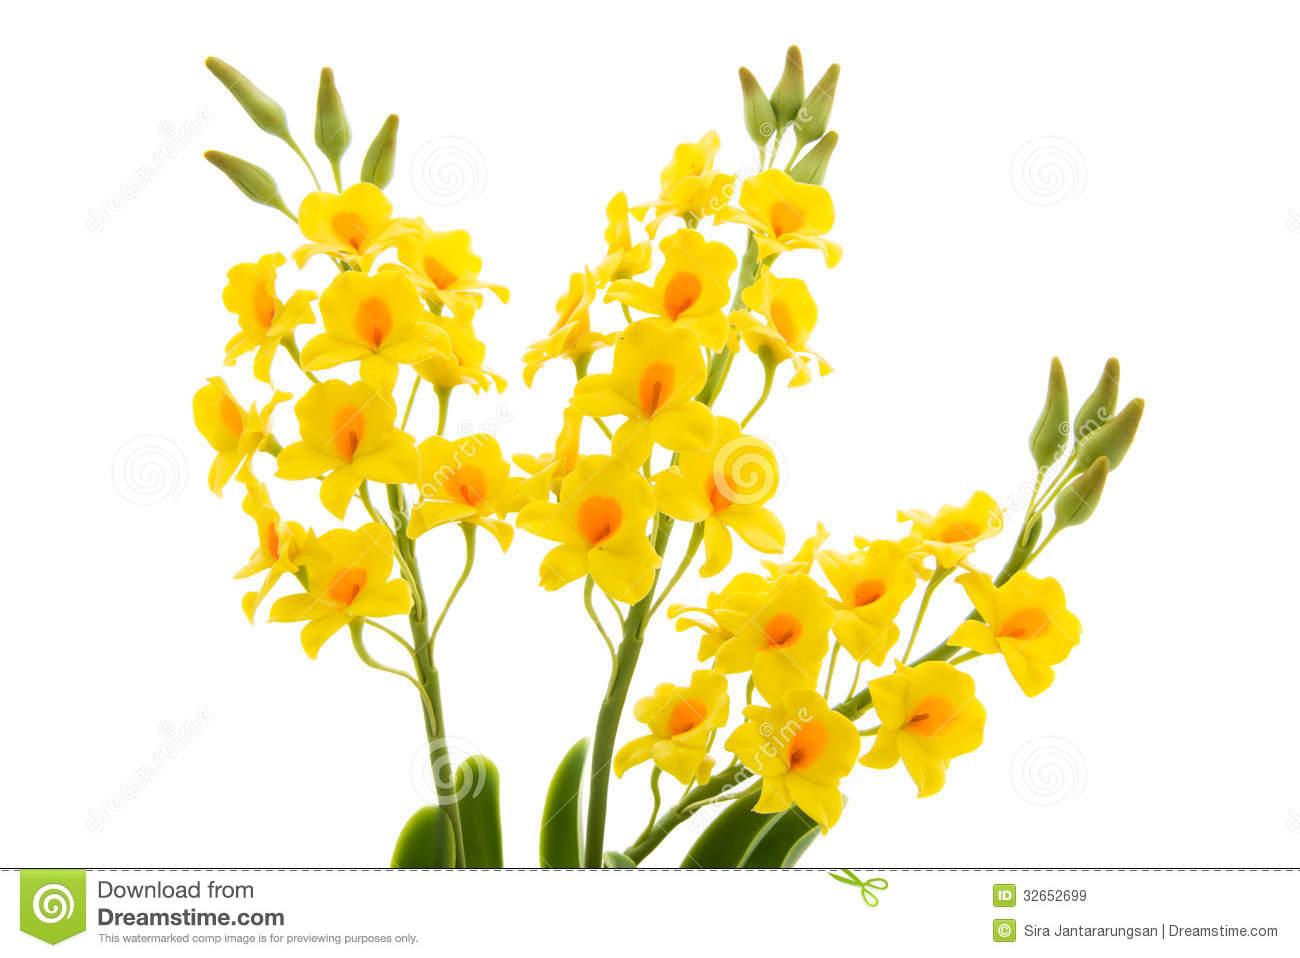 Light yellow orchid handmade flowers isolated on white background light yellow orchid handmade flowers isolated on white background royalty free stock images mightylinksfo